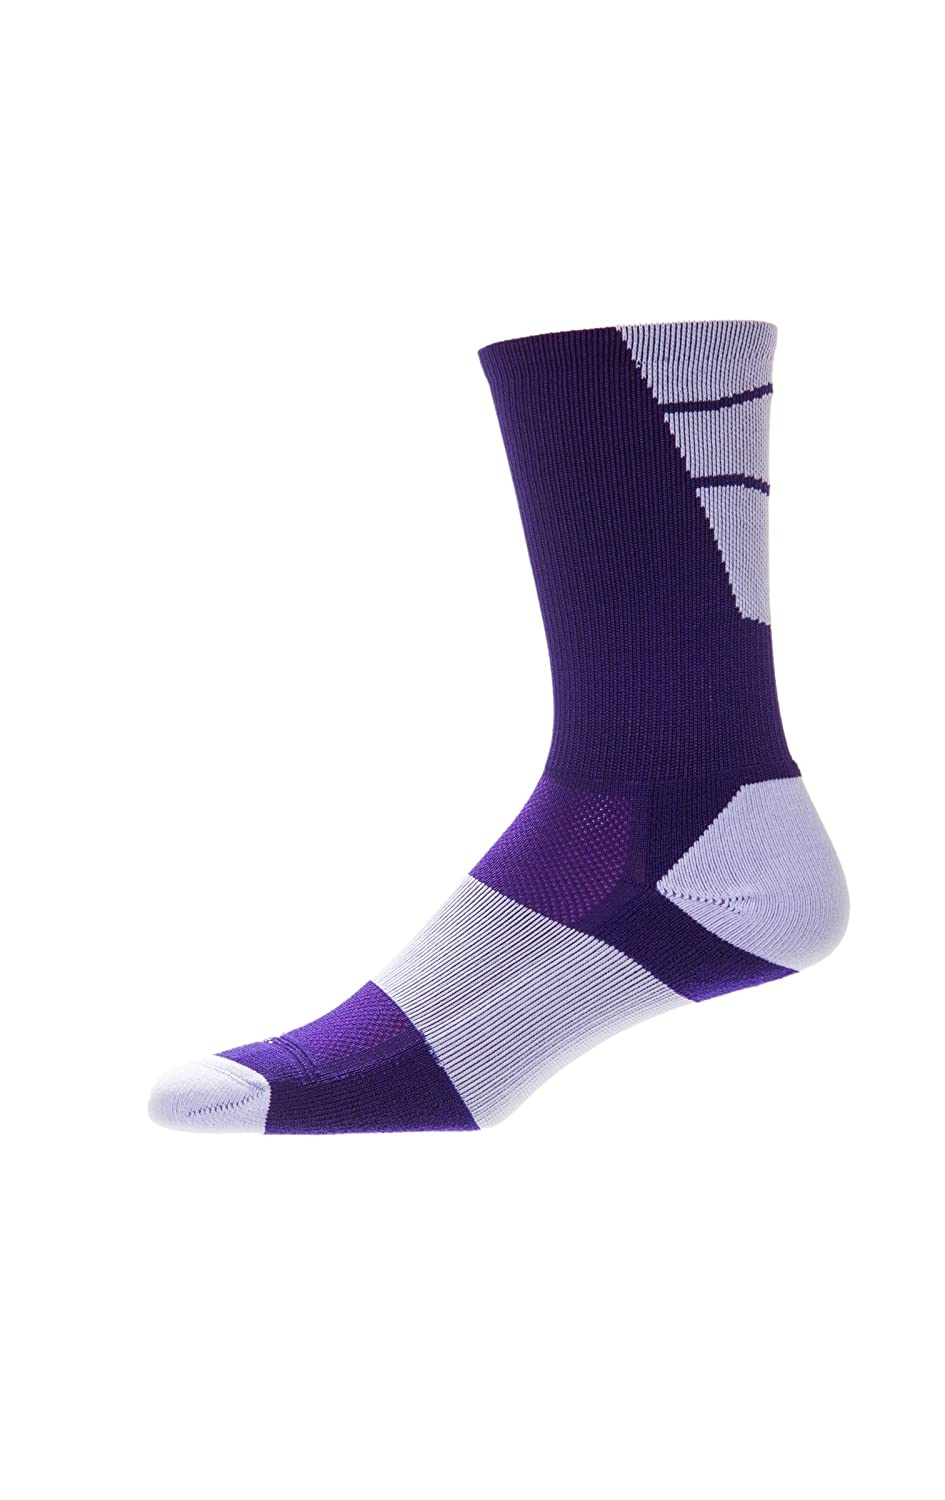 CSI Point Guard Performance Crew Socks Made In The USA Purple/White 6MAN10021